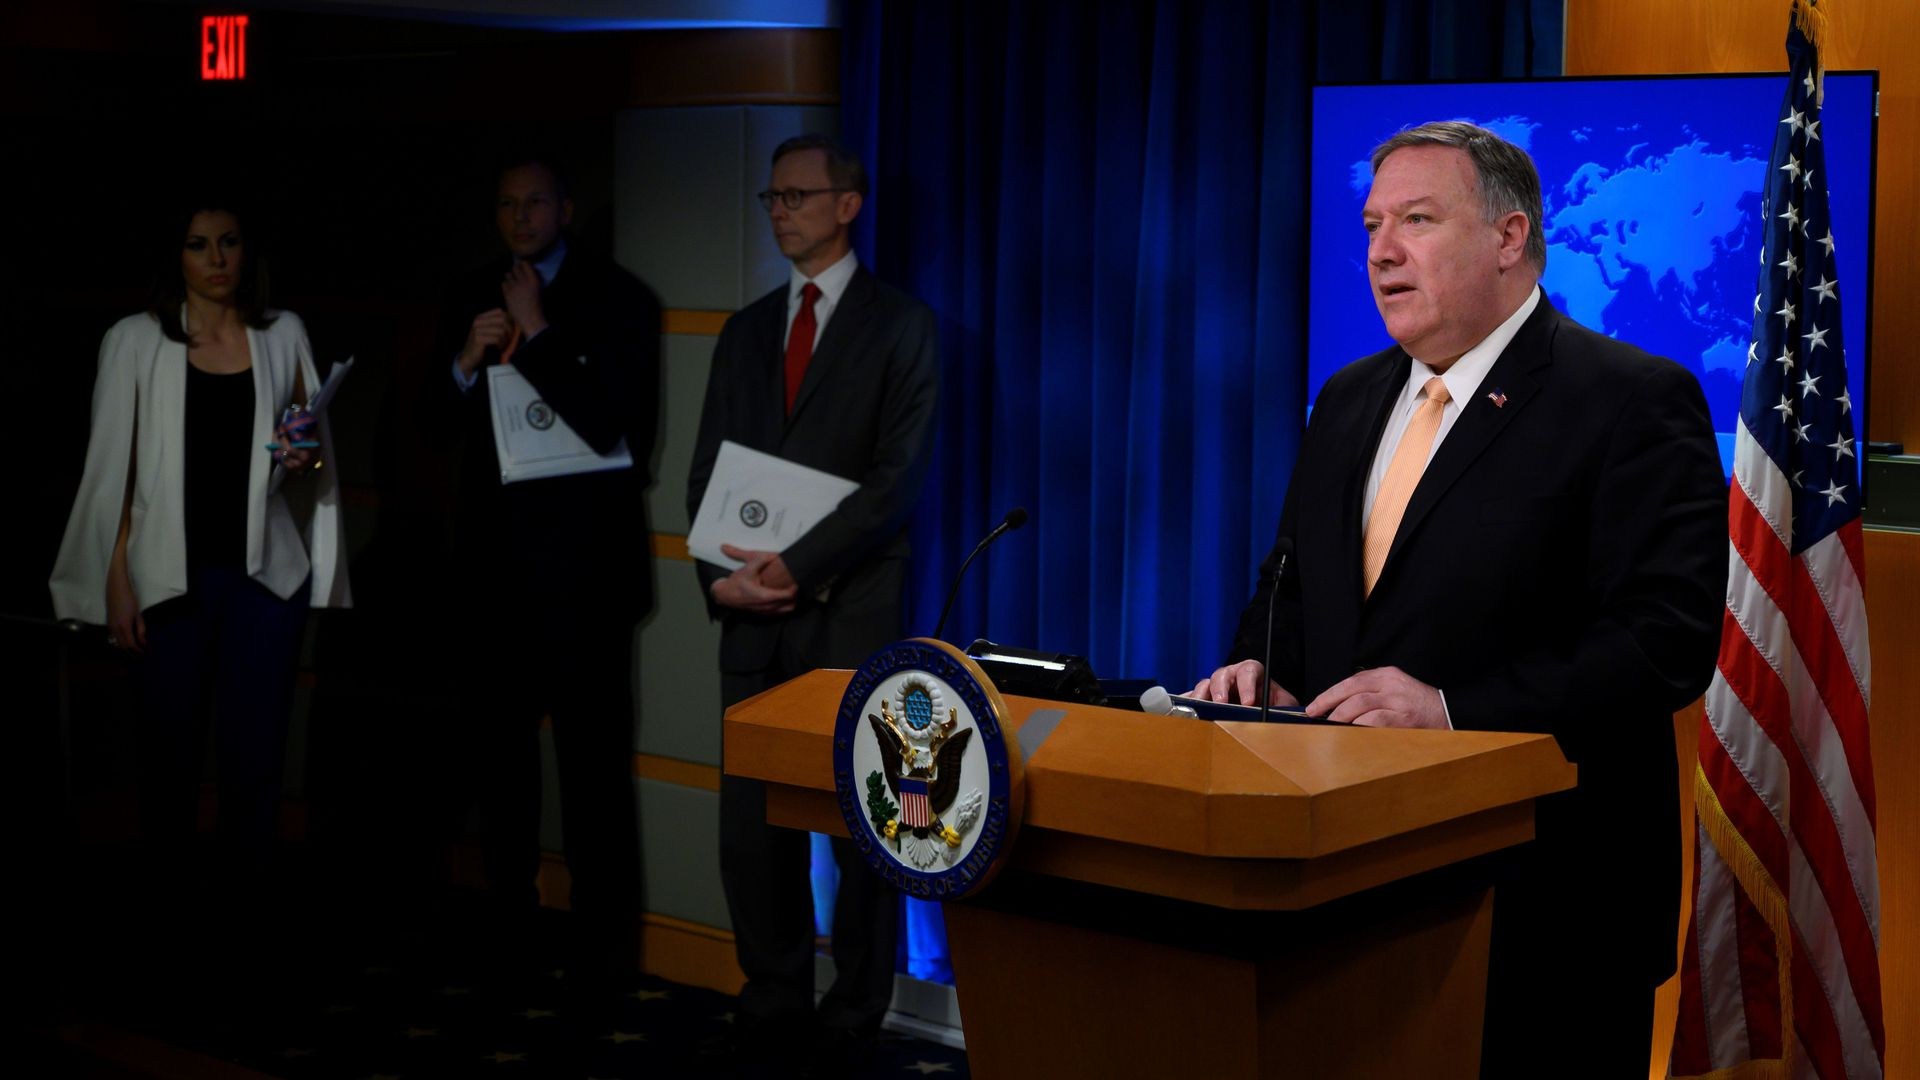 Mike Pompeo at a lectern during State Department press conference